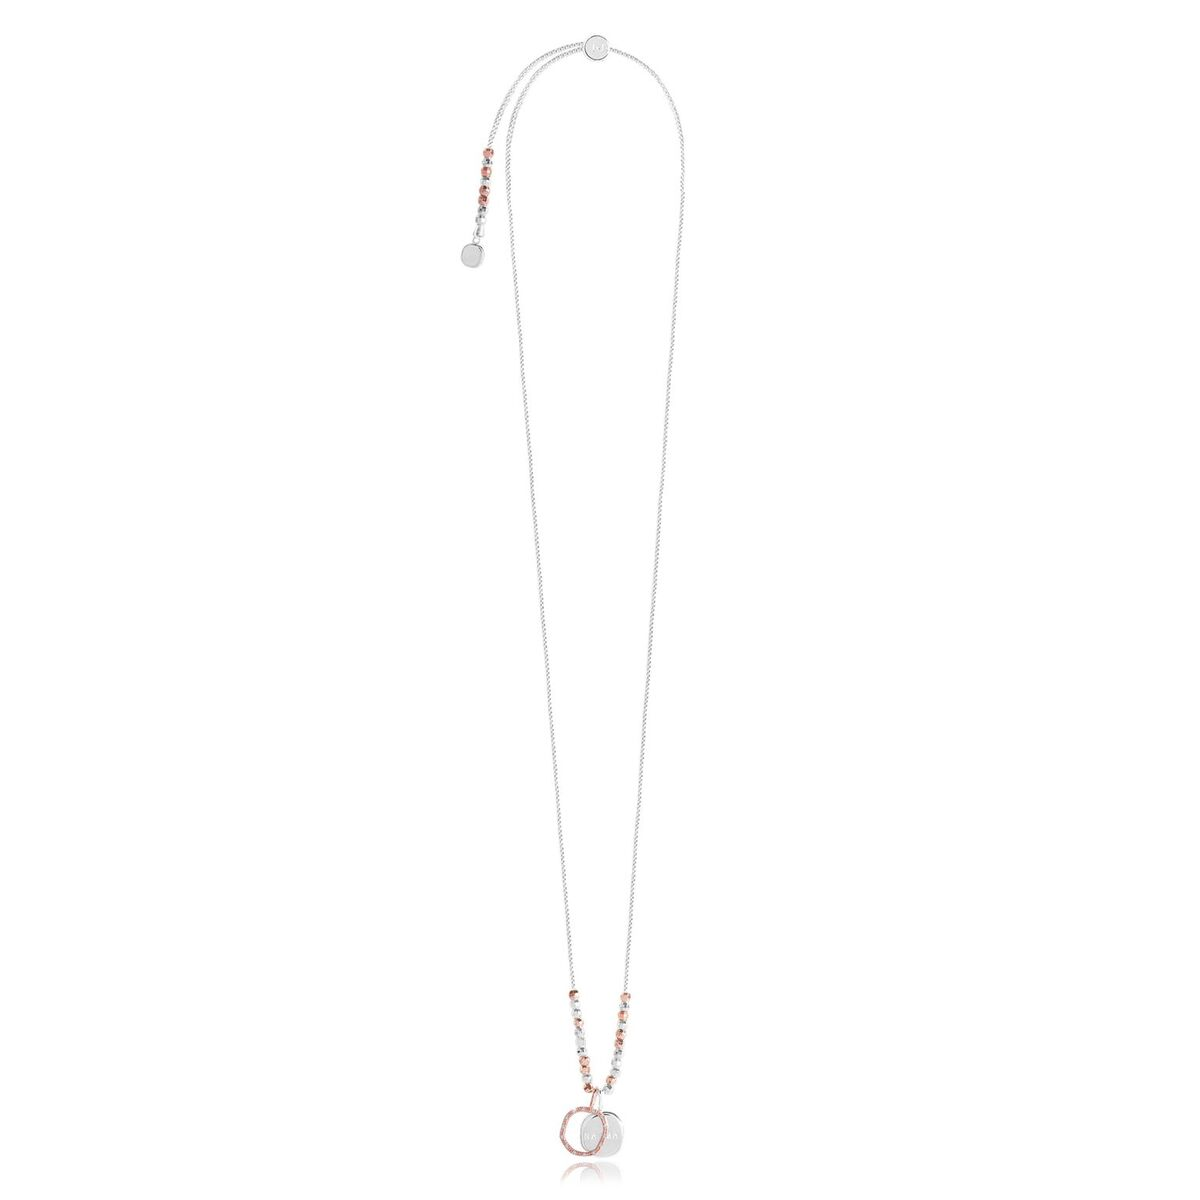 Caci Karma Necklace - Rose Gold & Silver